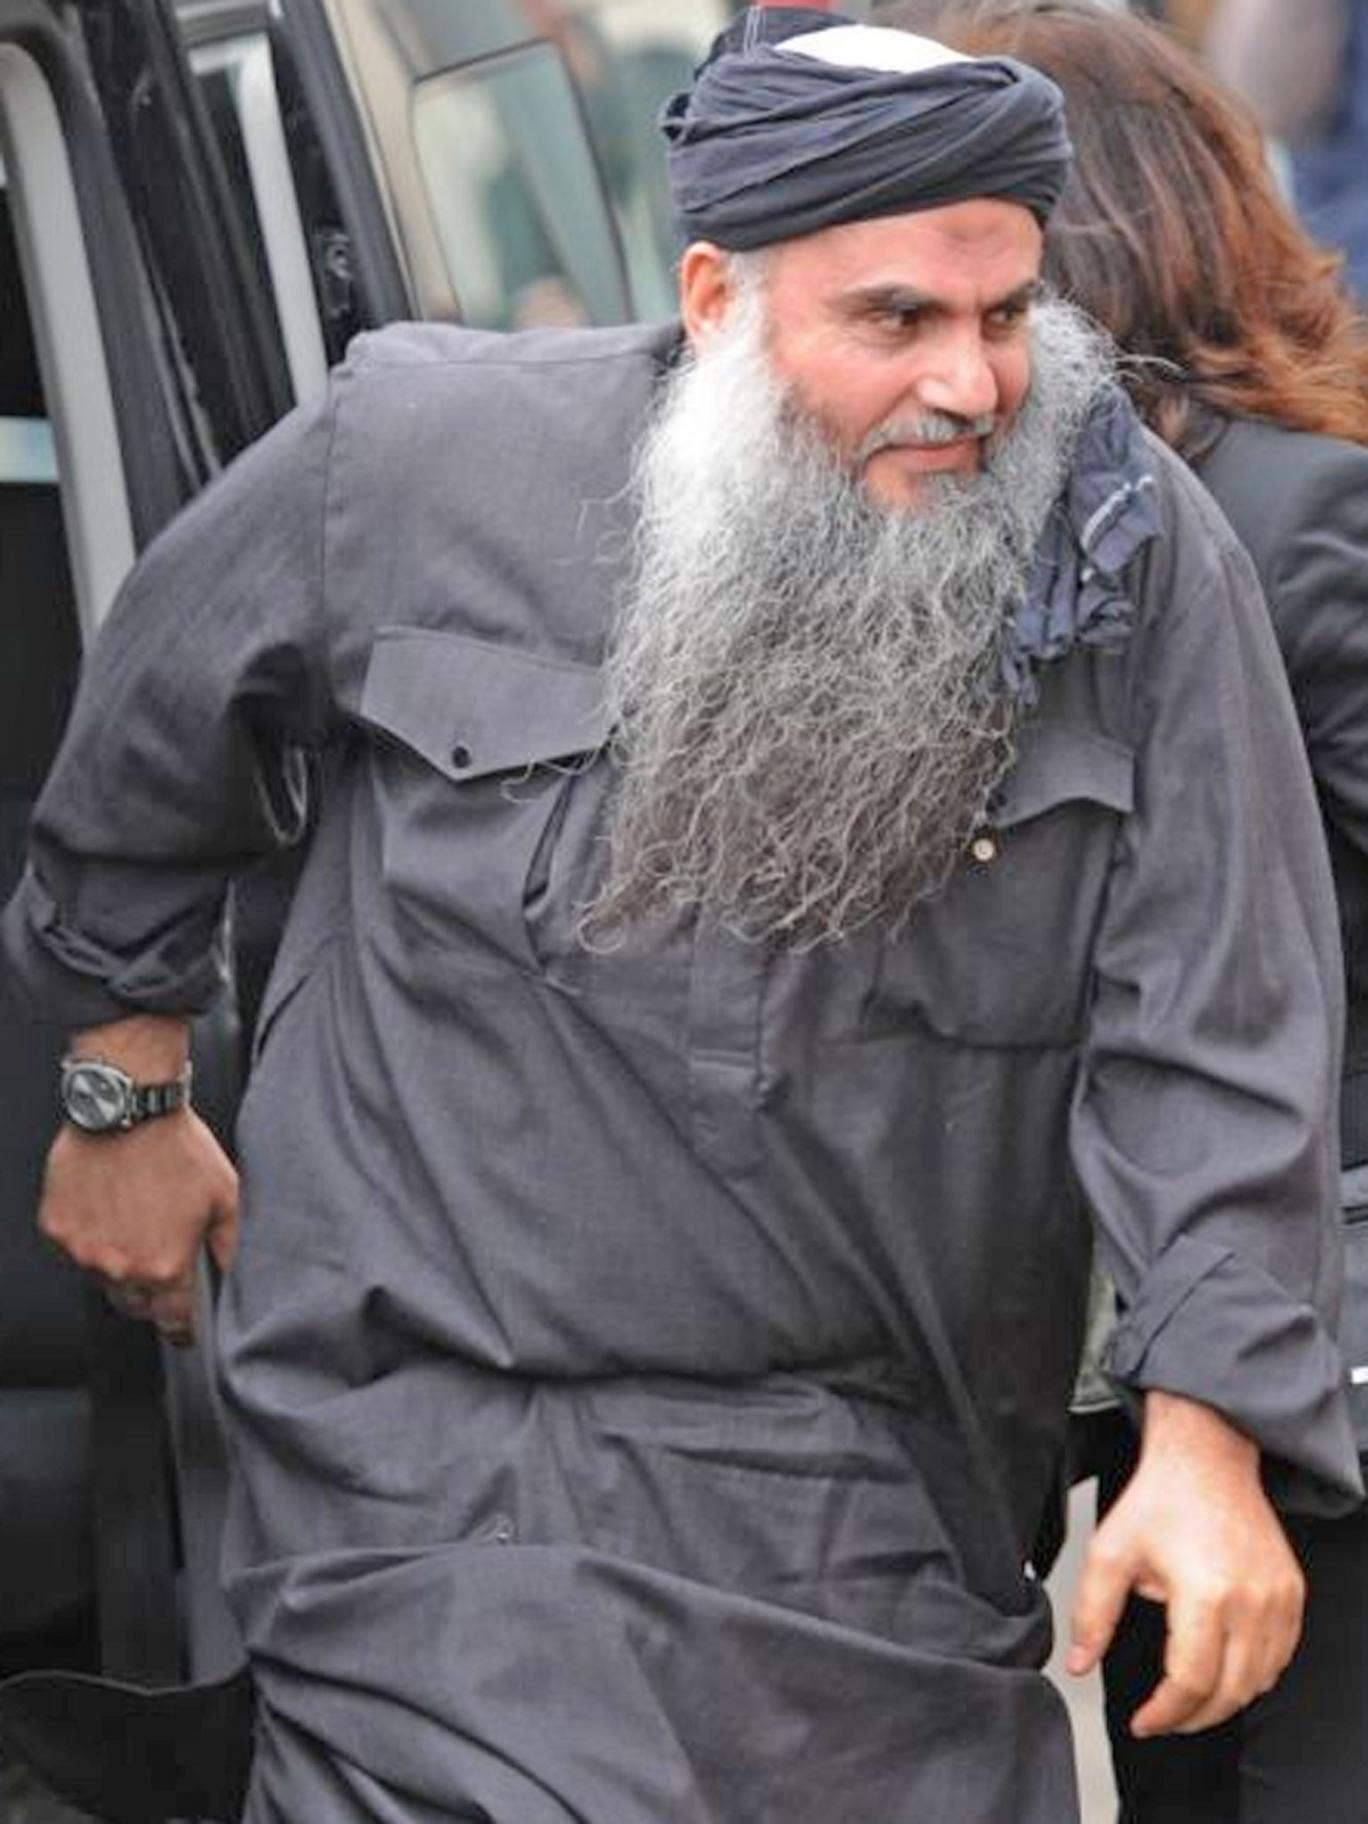 The family of the radical preacher Abu Qatada has won an injunction preventing protesters from demonstrating outside their home